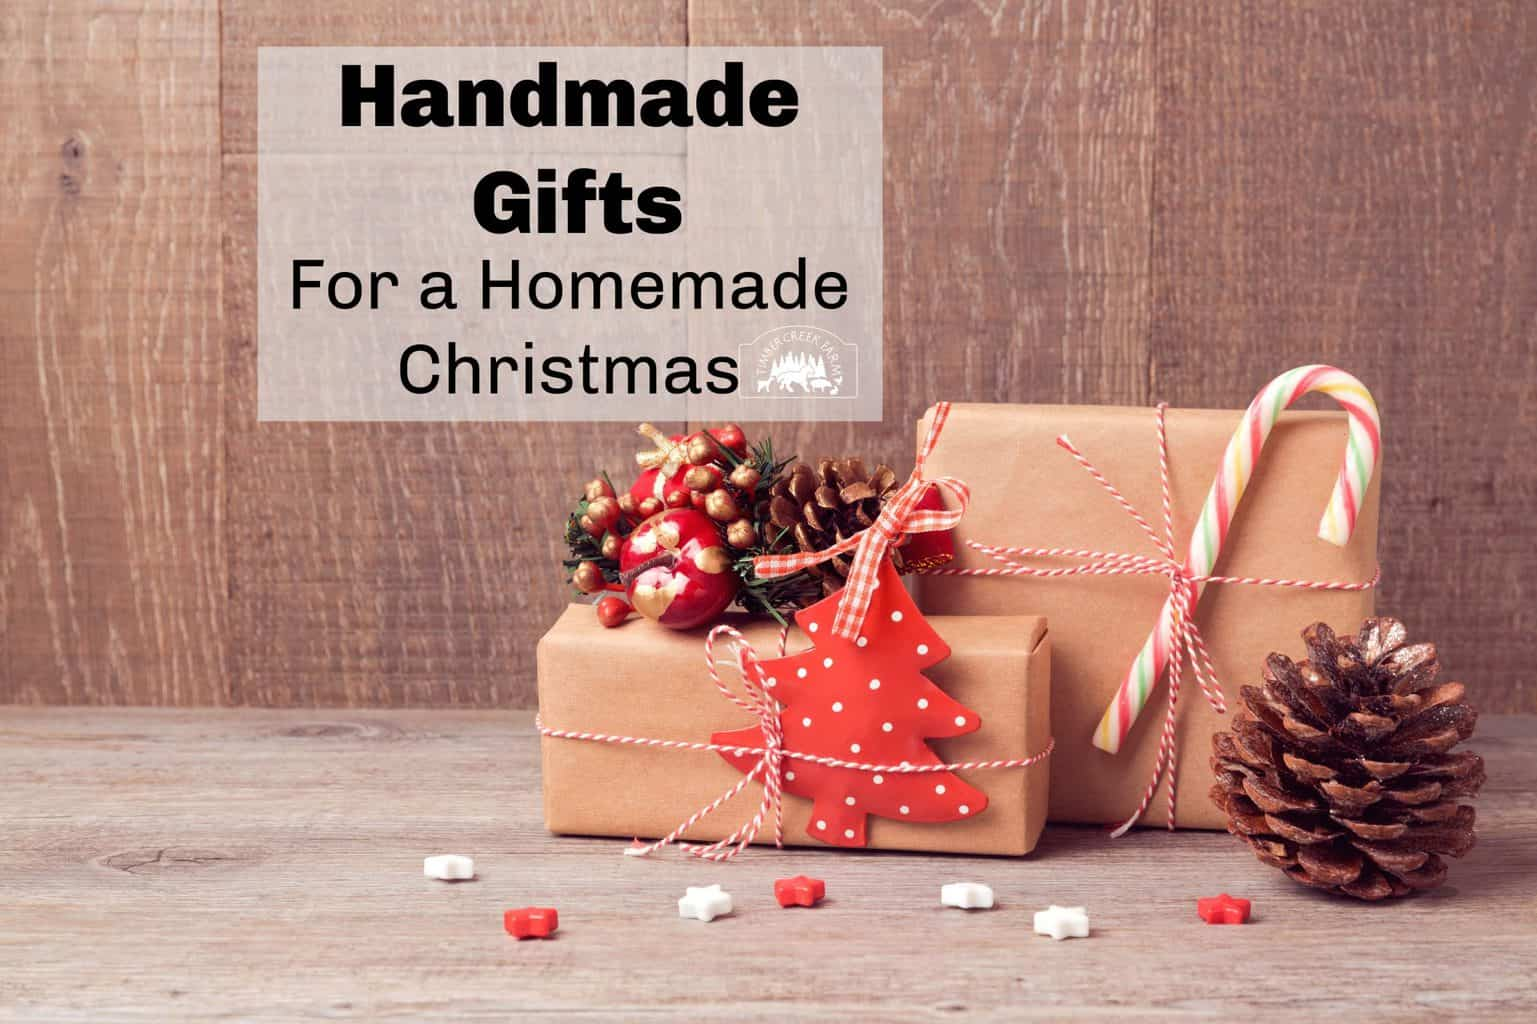 Handmade gifts for a homemade Christmas. Handmade gifts are a tradition. Remember last year when you promised yourself you would make homemade gifts all  year long? And here we are. Searching for all the quick handmade gifts to give to our family and friends.